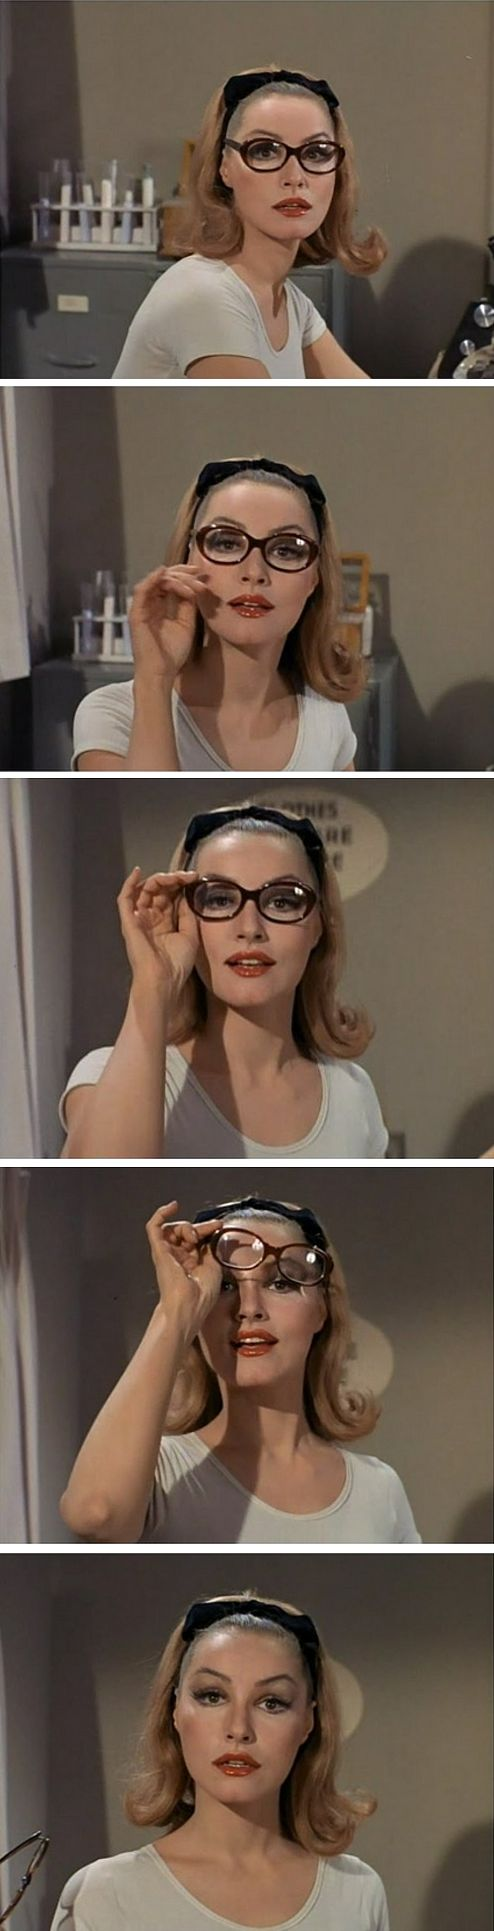 Julie Newmar just melted your brain #pinup #actor #glasses